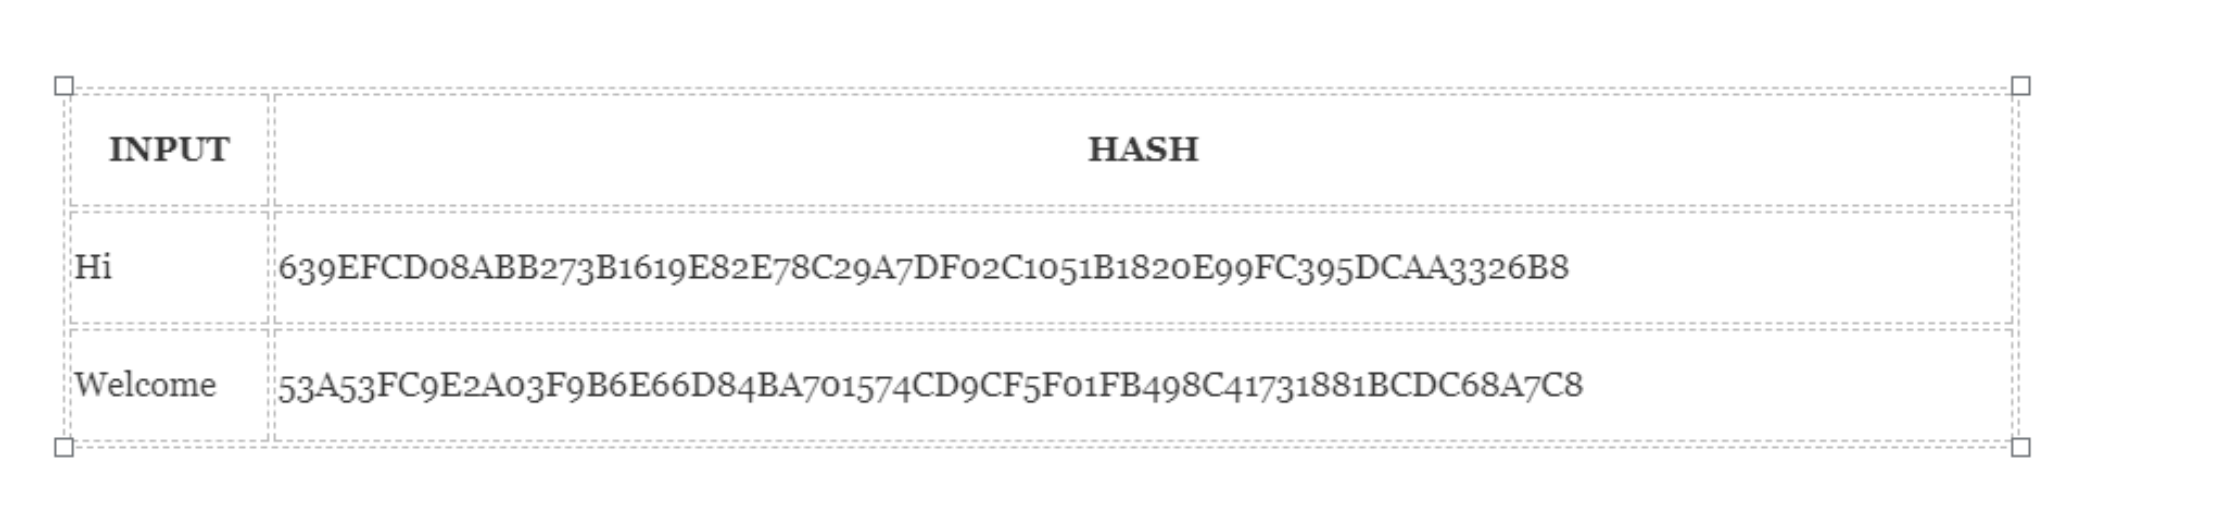 Hash examples